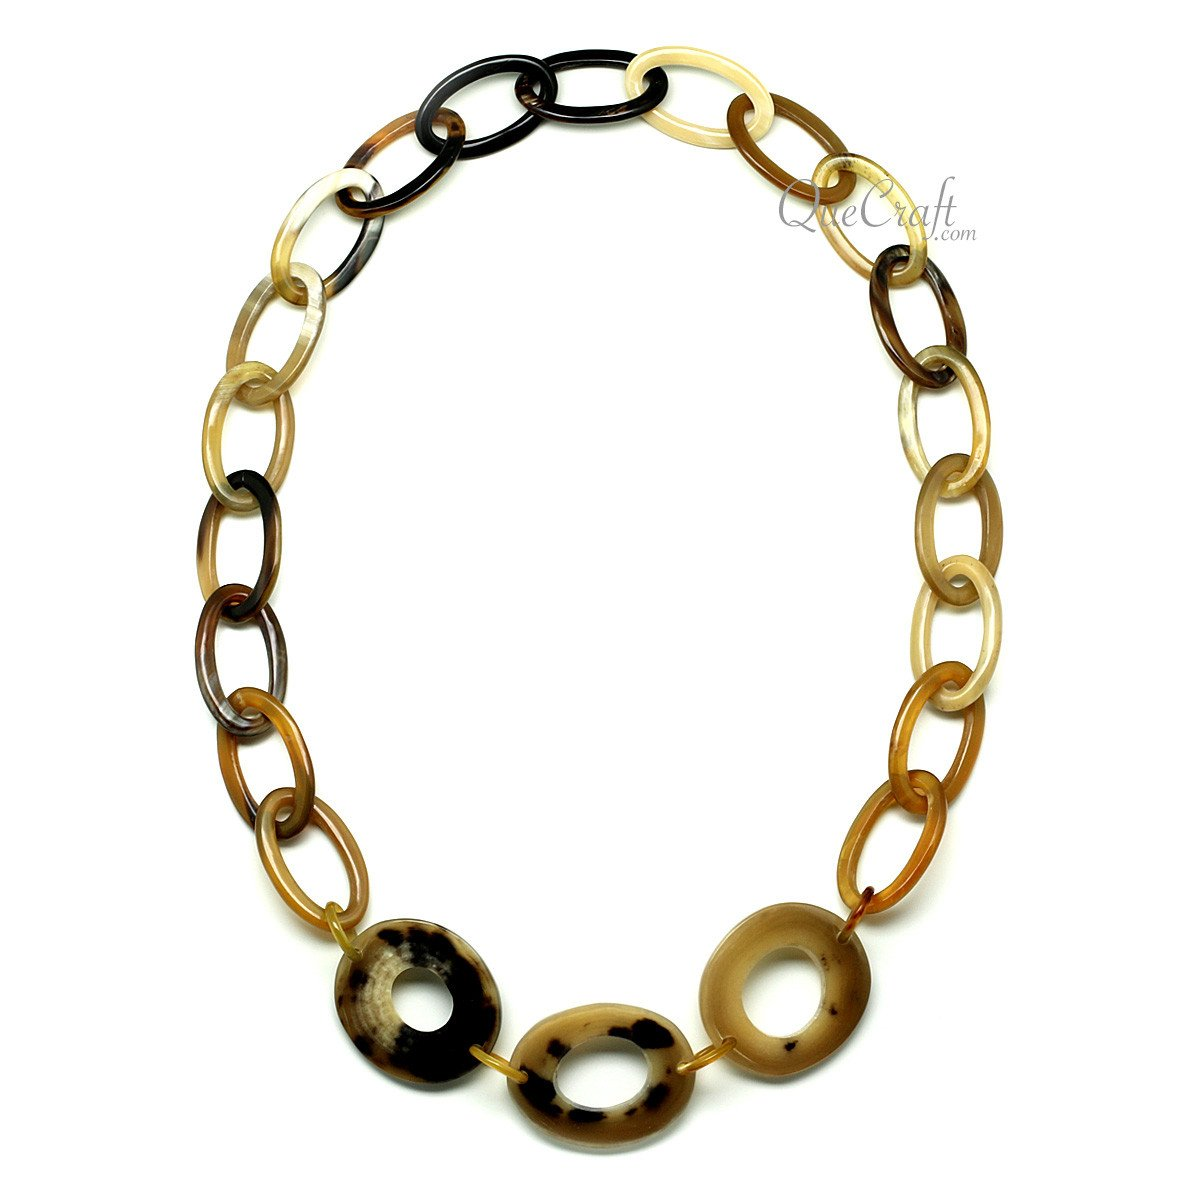 Horn Chain Necklace #10094 - HORN.JEWELRY by QueCraft